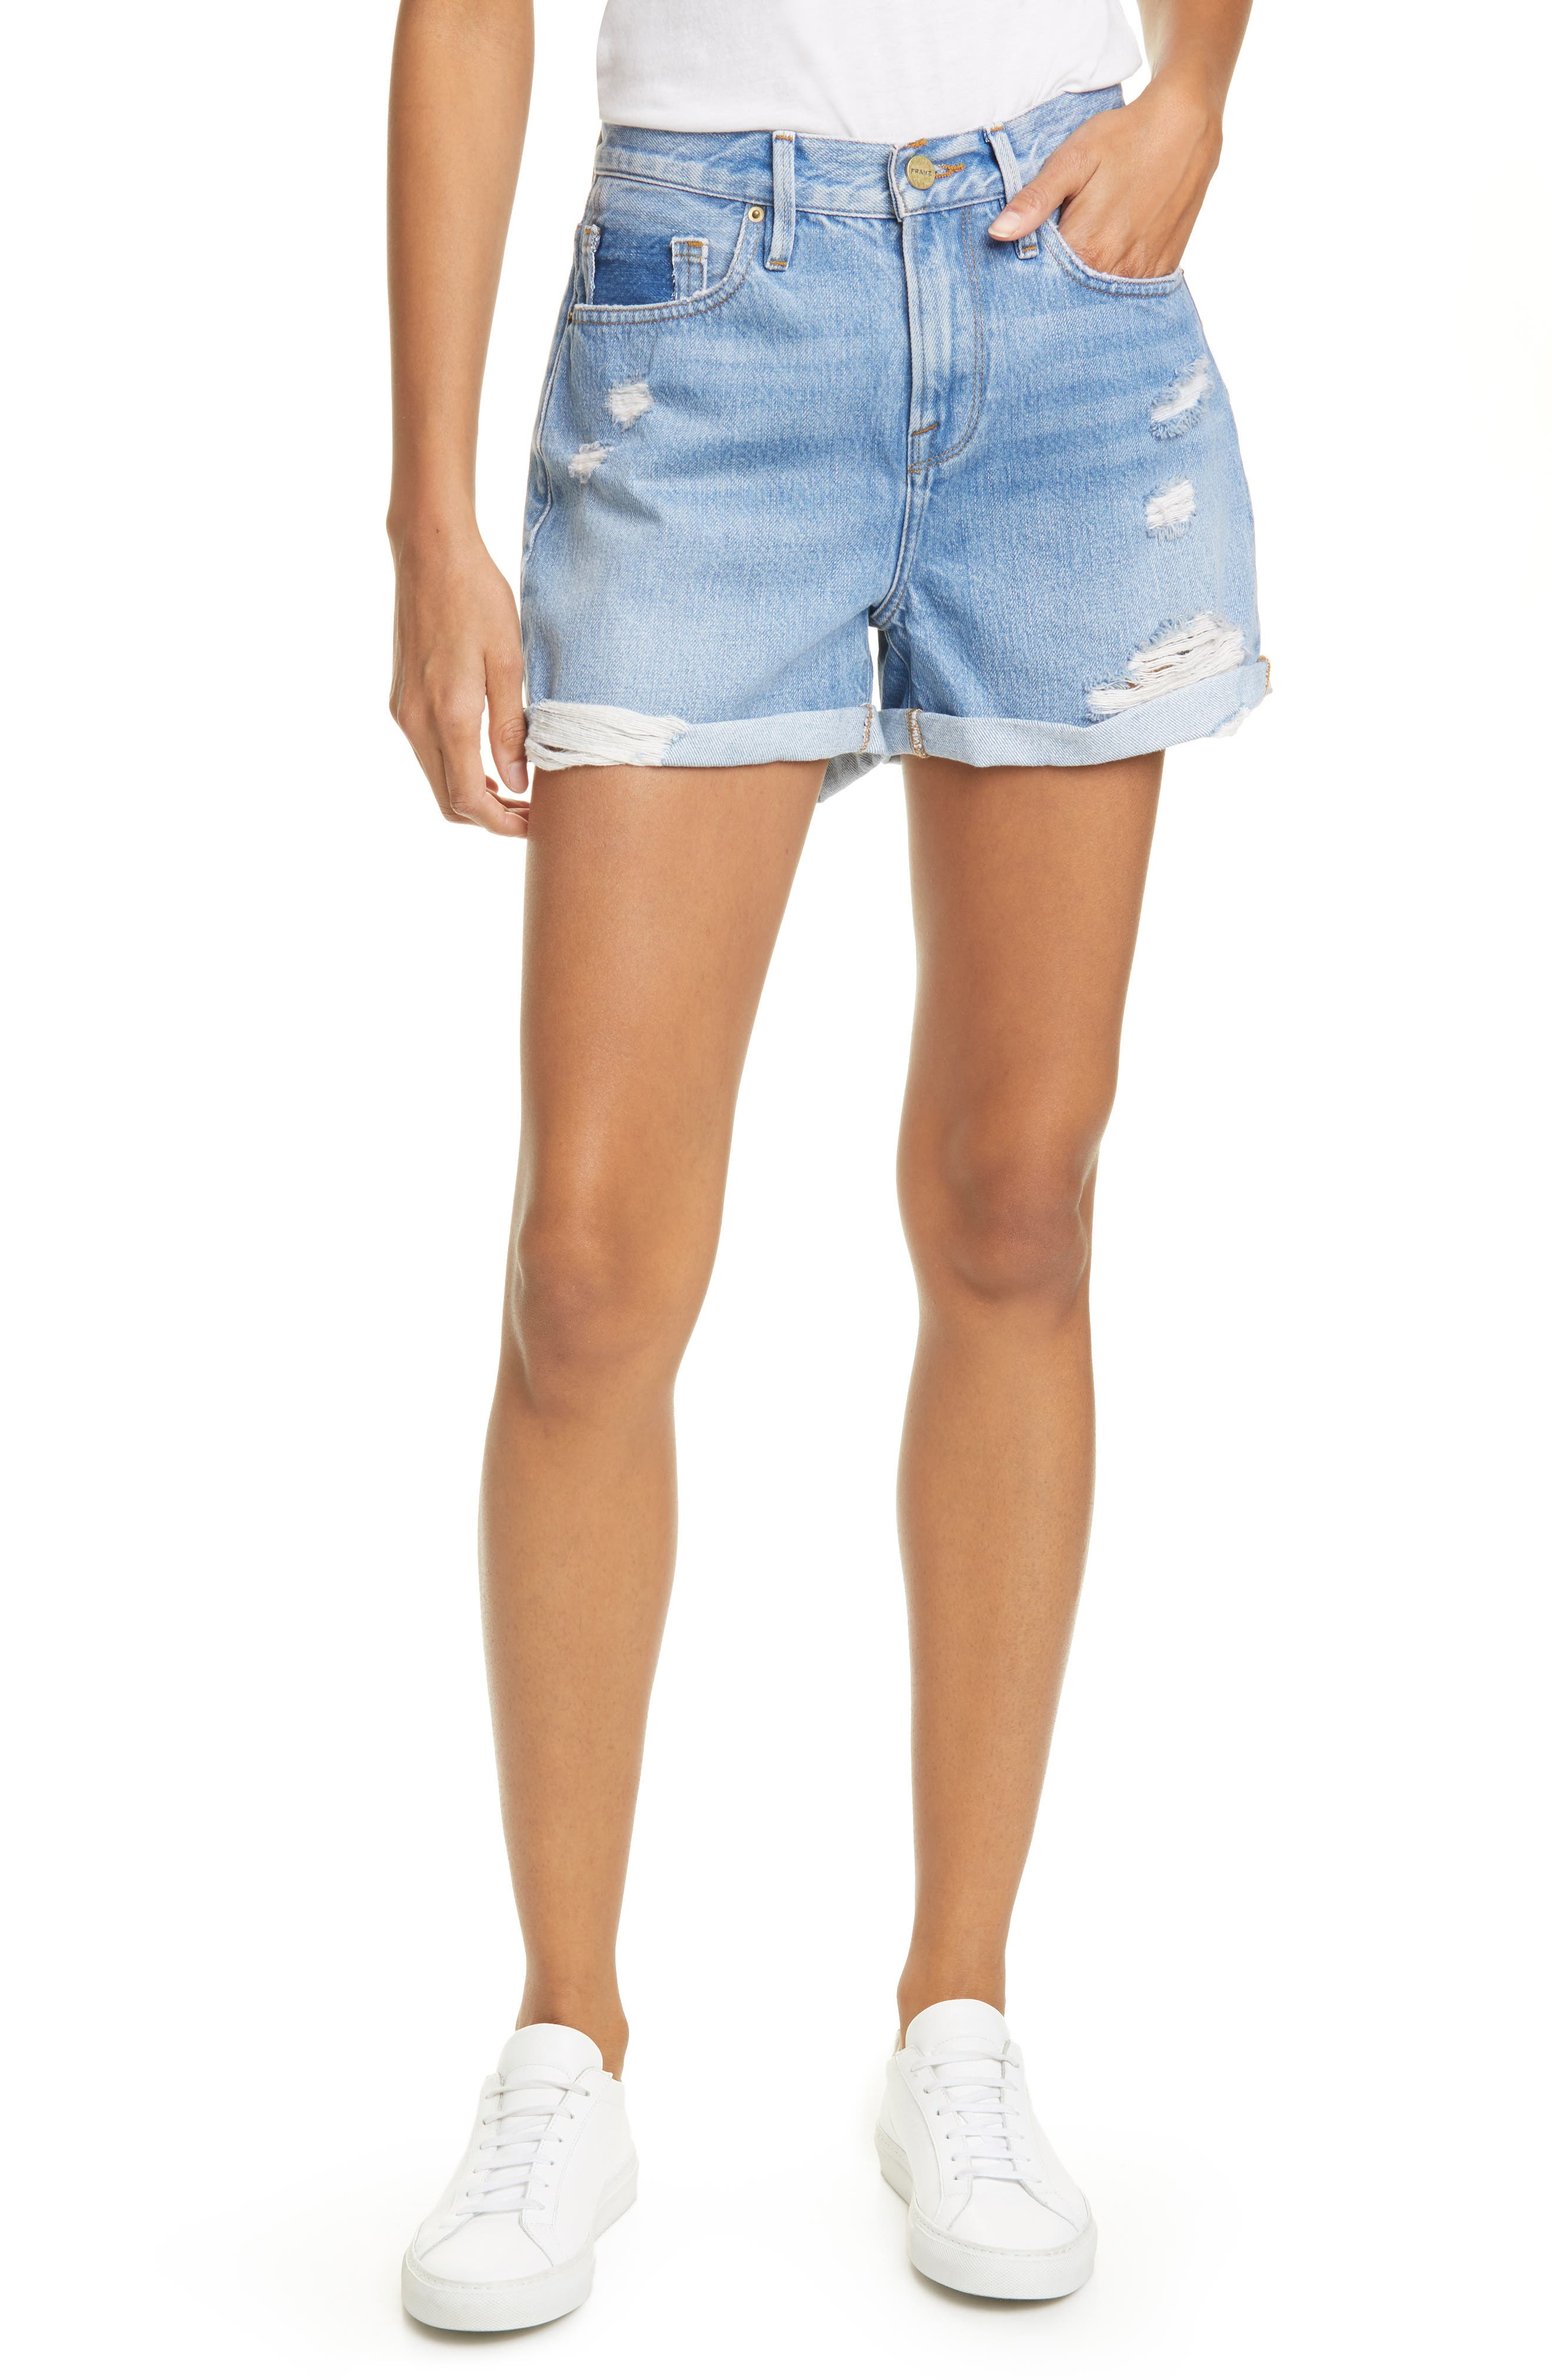 Women's Frame Le Beau Distressed High Waist Denim Shorts